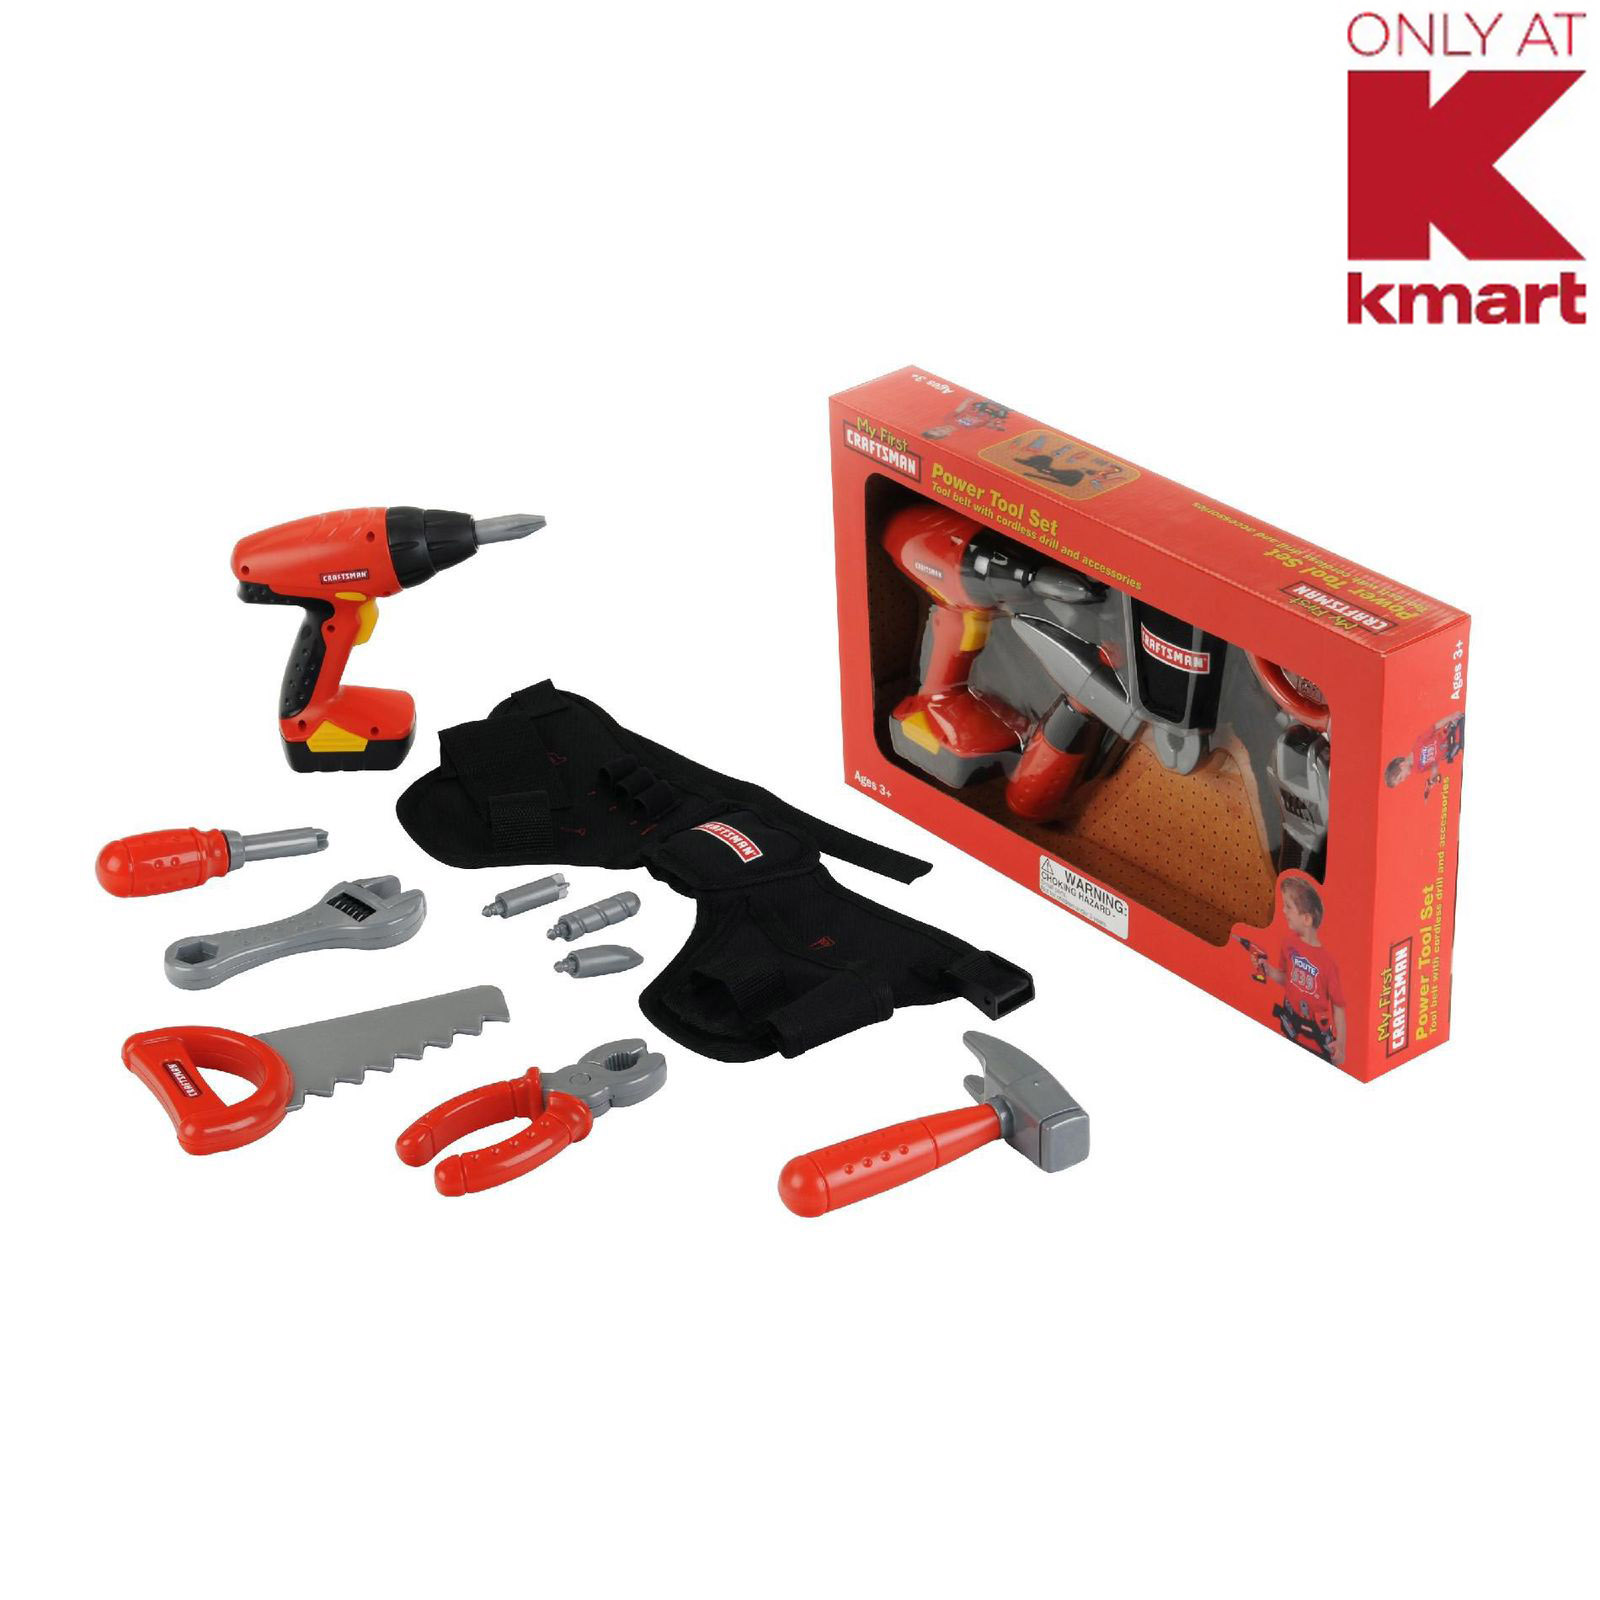 My First Craftsman  Power Tool Set w/